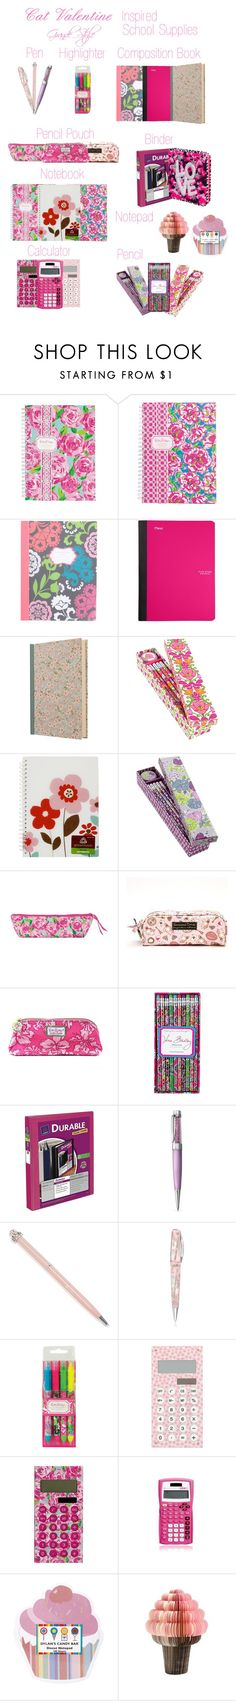 """Cat Inspired School Supplies"" by grandestyleofficial ❤ liked on Polyvore featuring Lilly Pulitzer, Vera Bradley, Avery, Harrods, Visconti, Dylan's Candy Bar, ArianaGrande, CatValentine, Arianator and CatInspired"